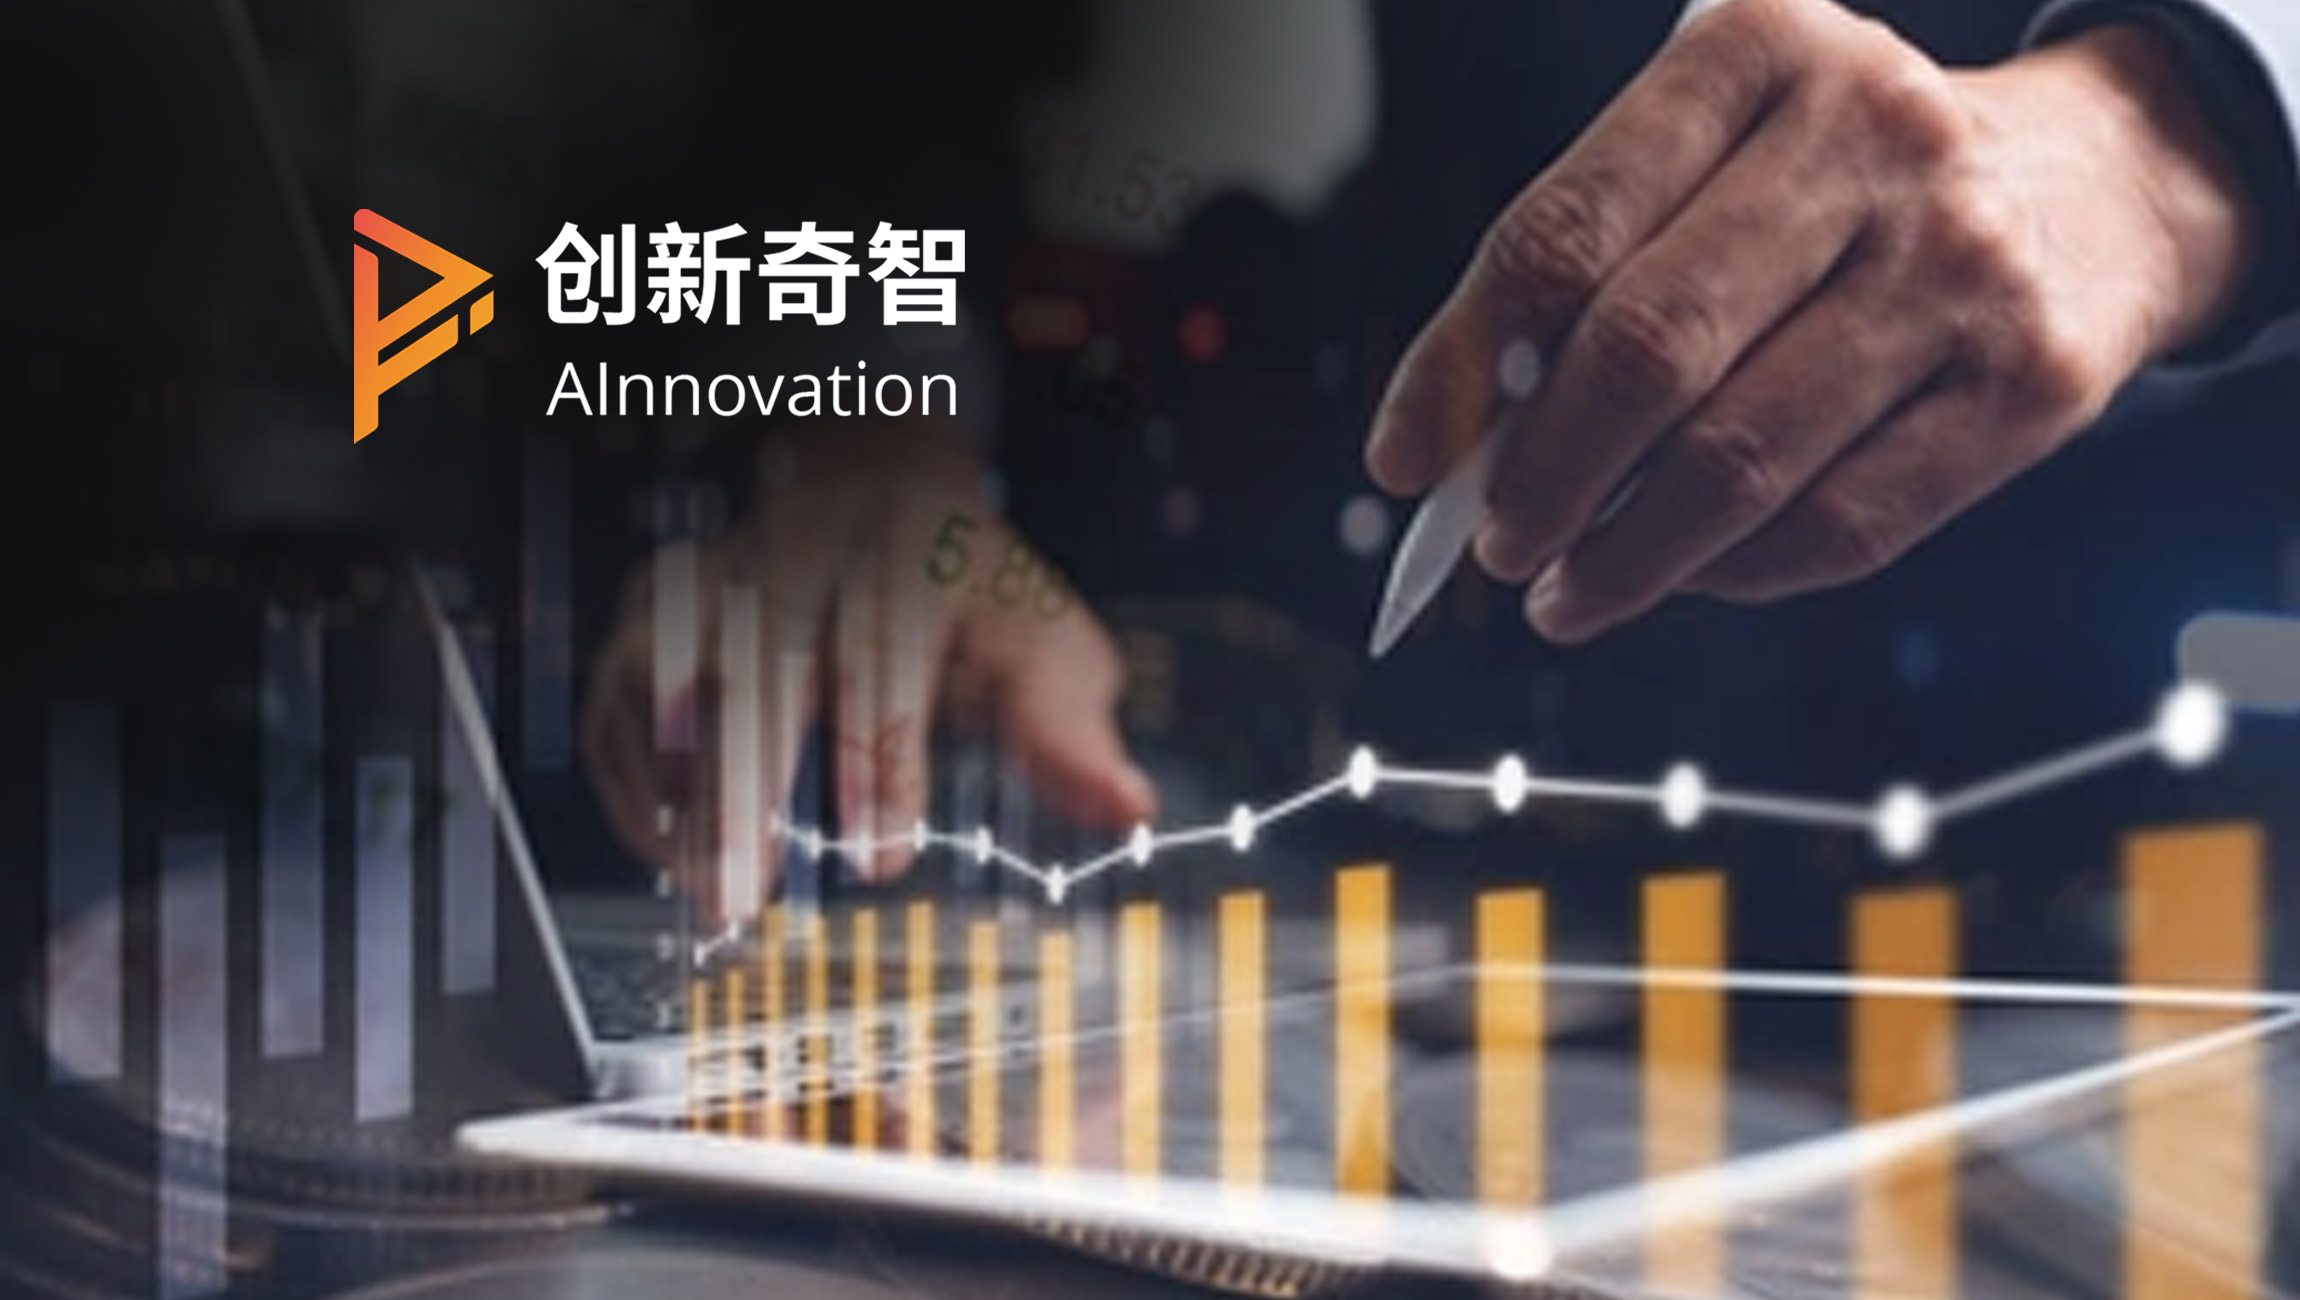 AInnovation-Completes-Series-D-Financing_-Further-Focusing-on-Smart-Manufacturing